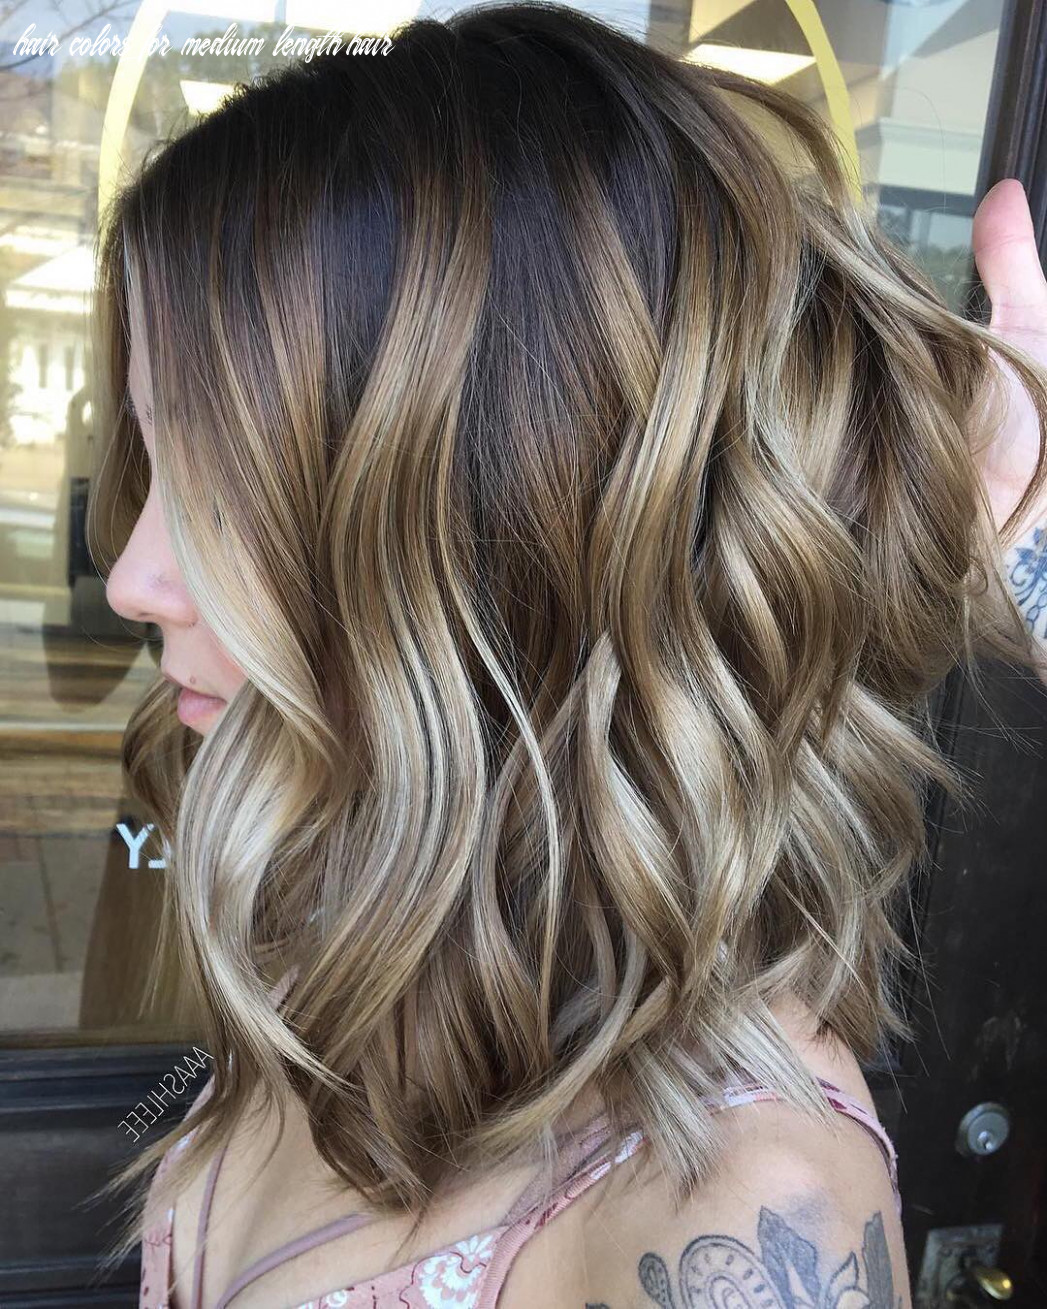 11 ombre balayage hairstyles for medium length hair, hair color 11 hair colors for medium length hair